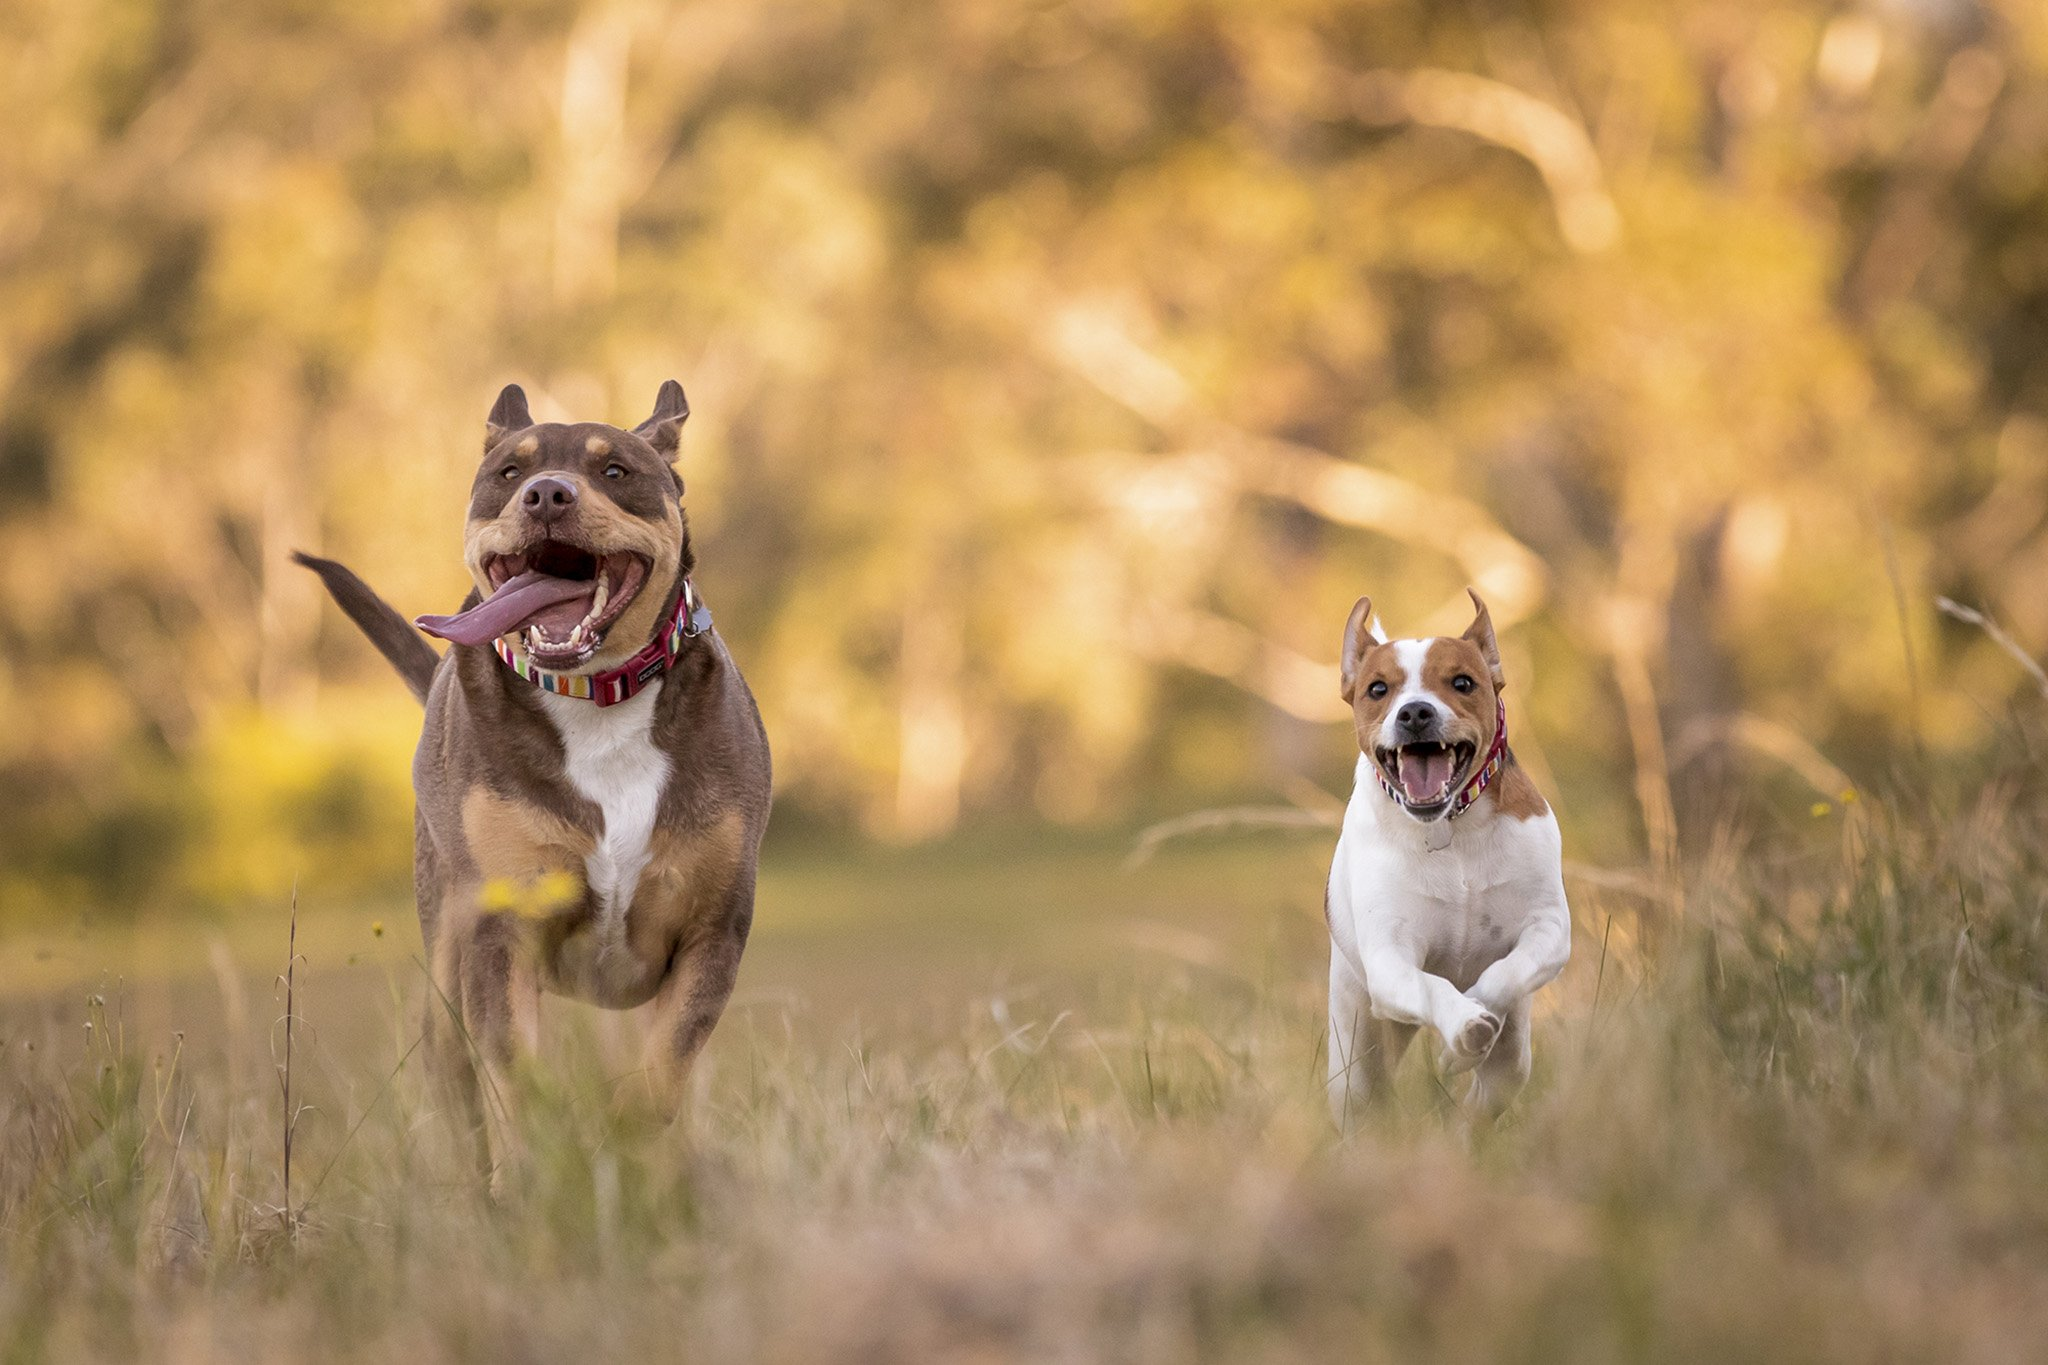 Two dogs running on the farm in the afternoon sunlight